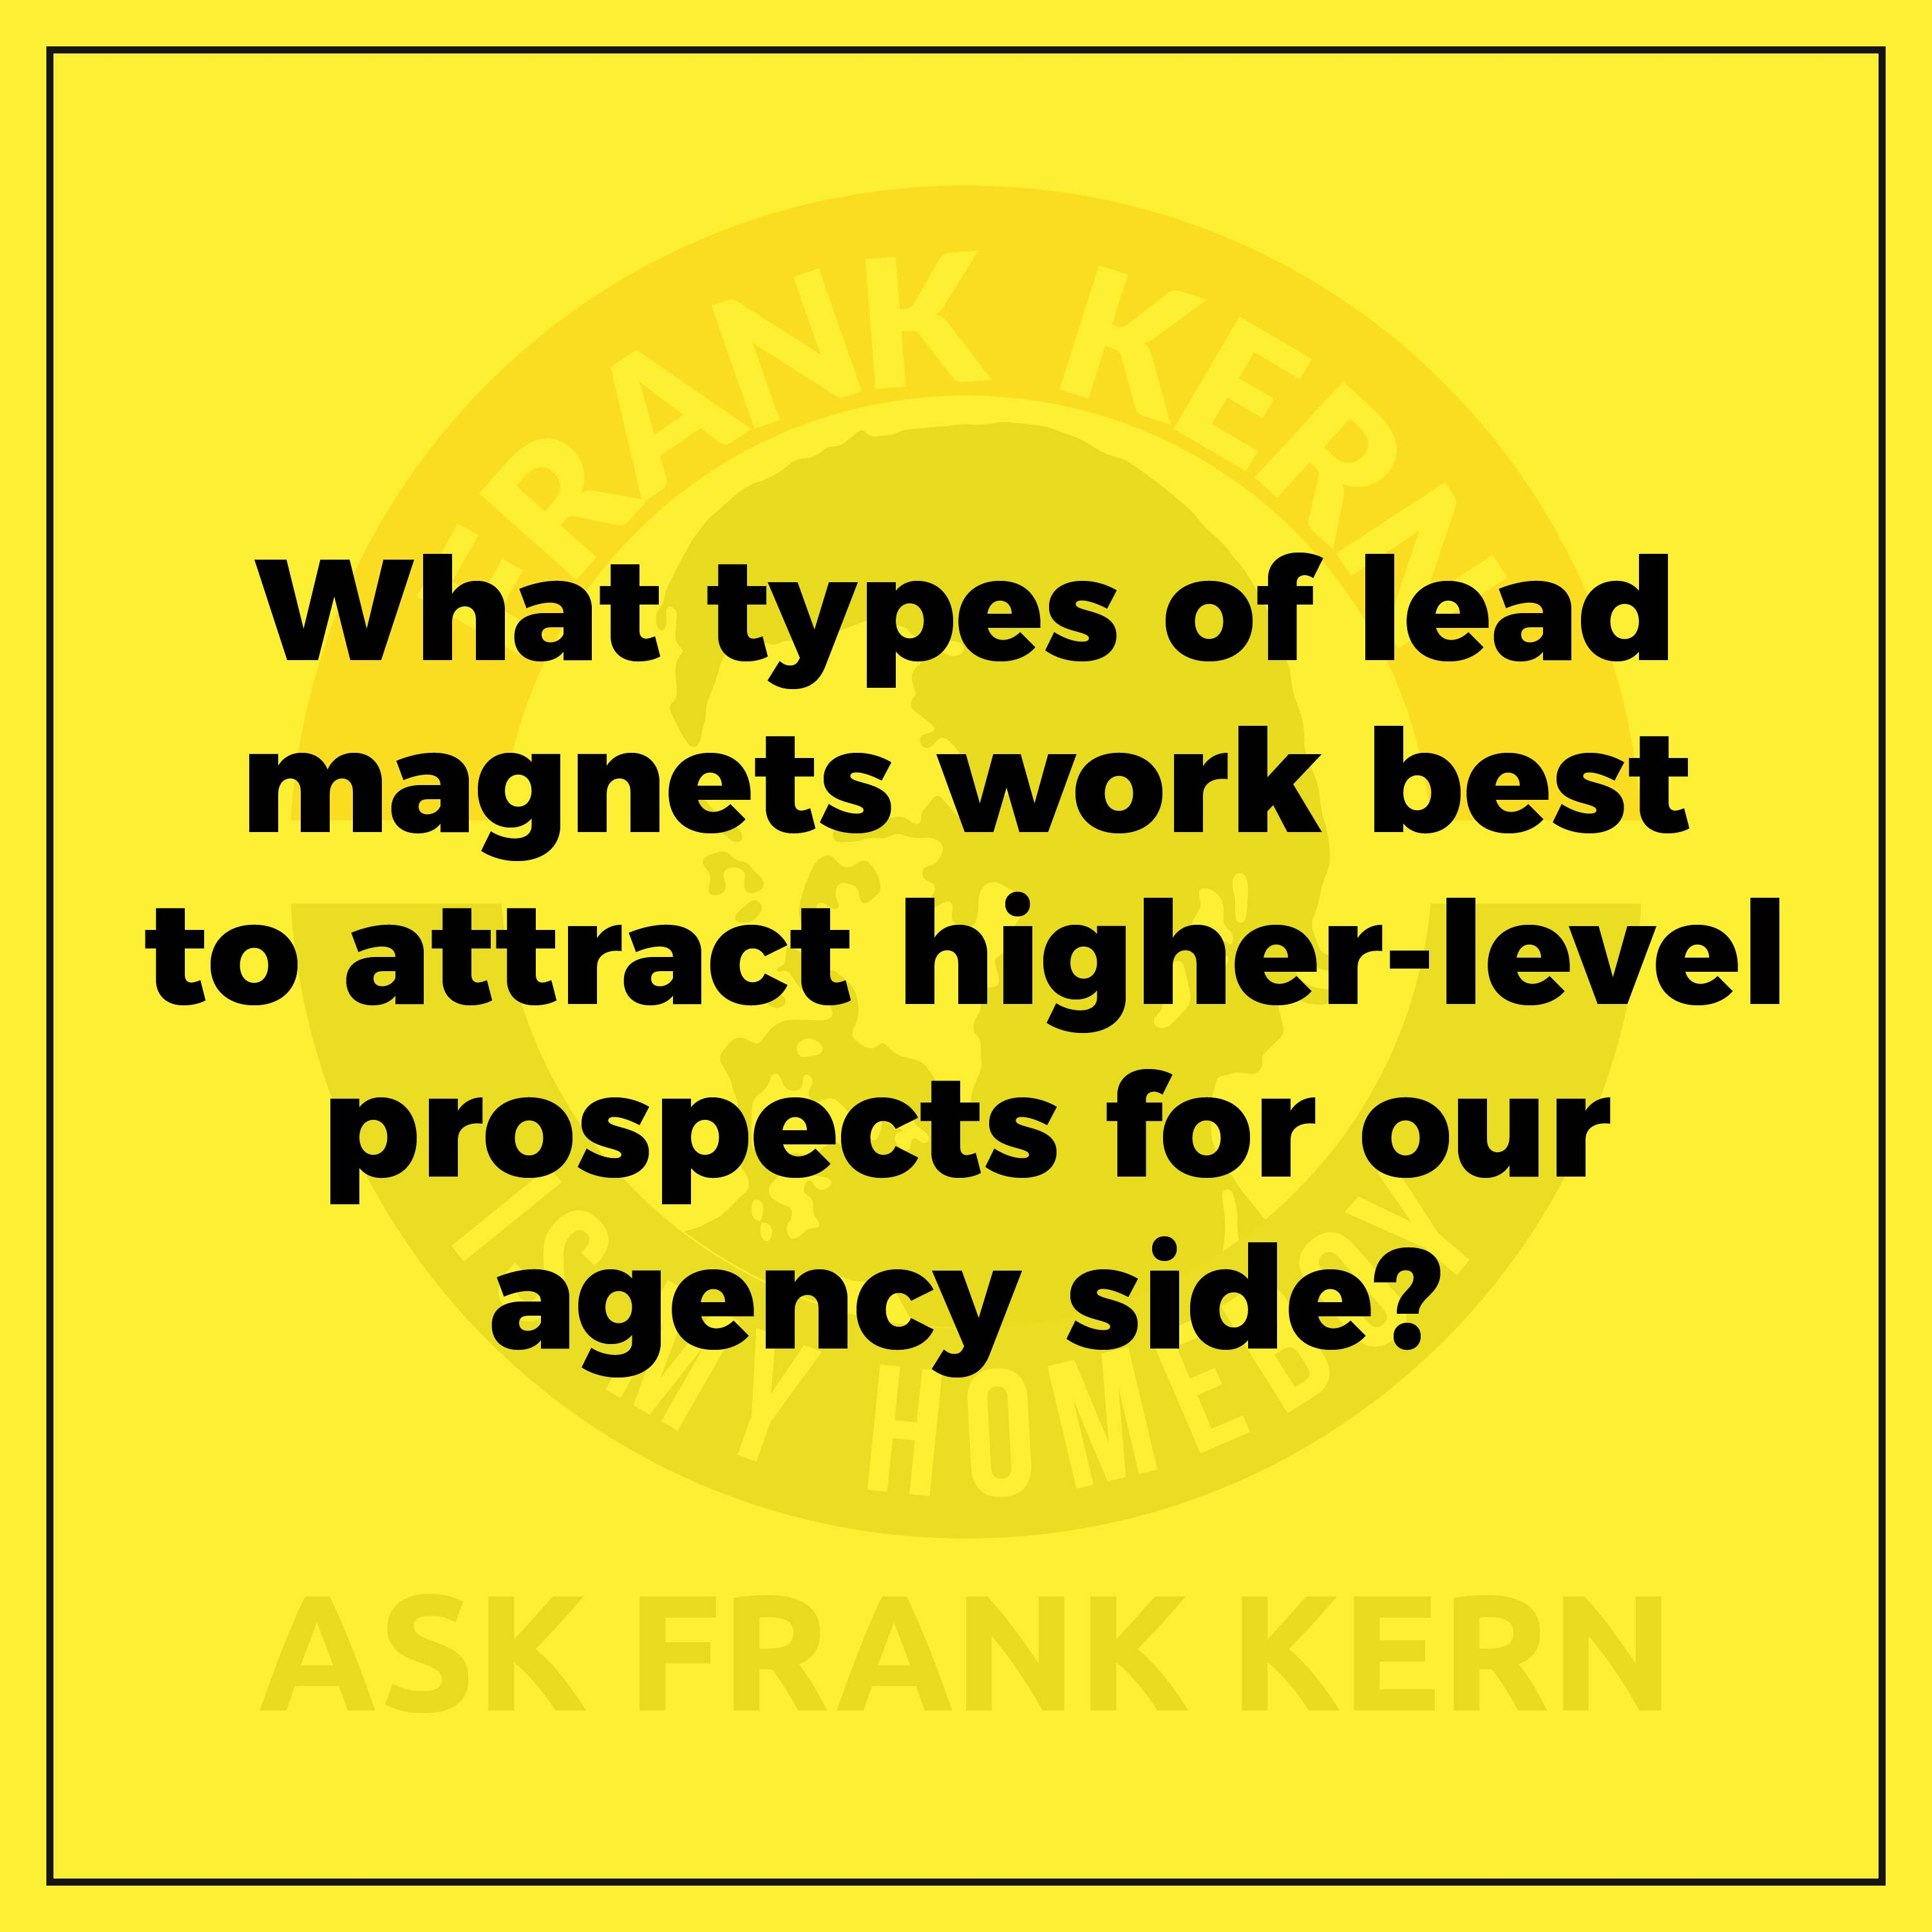 What types of lead magnets work best to attract higher-level prospects for our agency side?